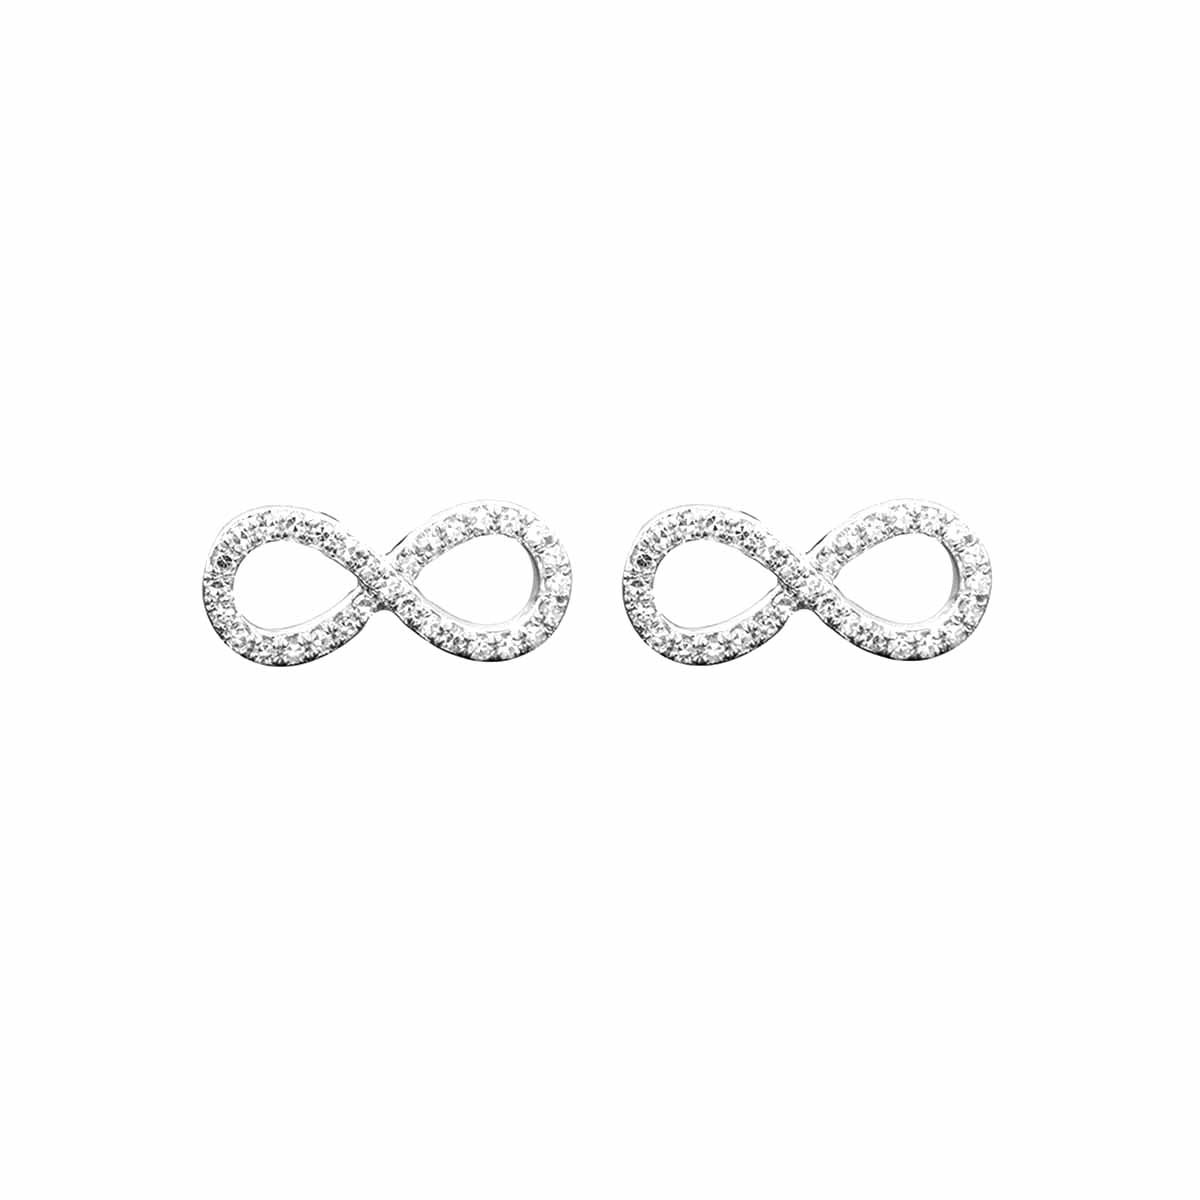 New Venetti 0.18 CTW Diamond Infinity Stud Earrings